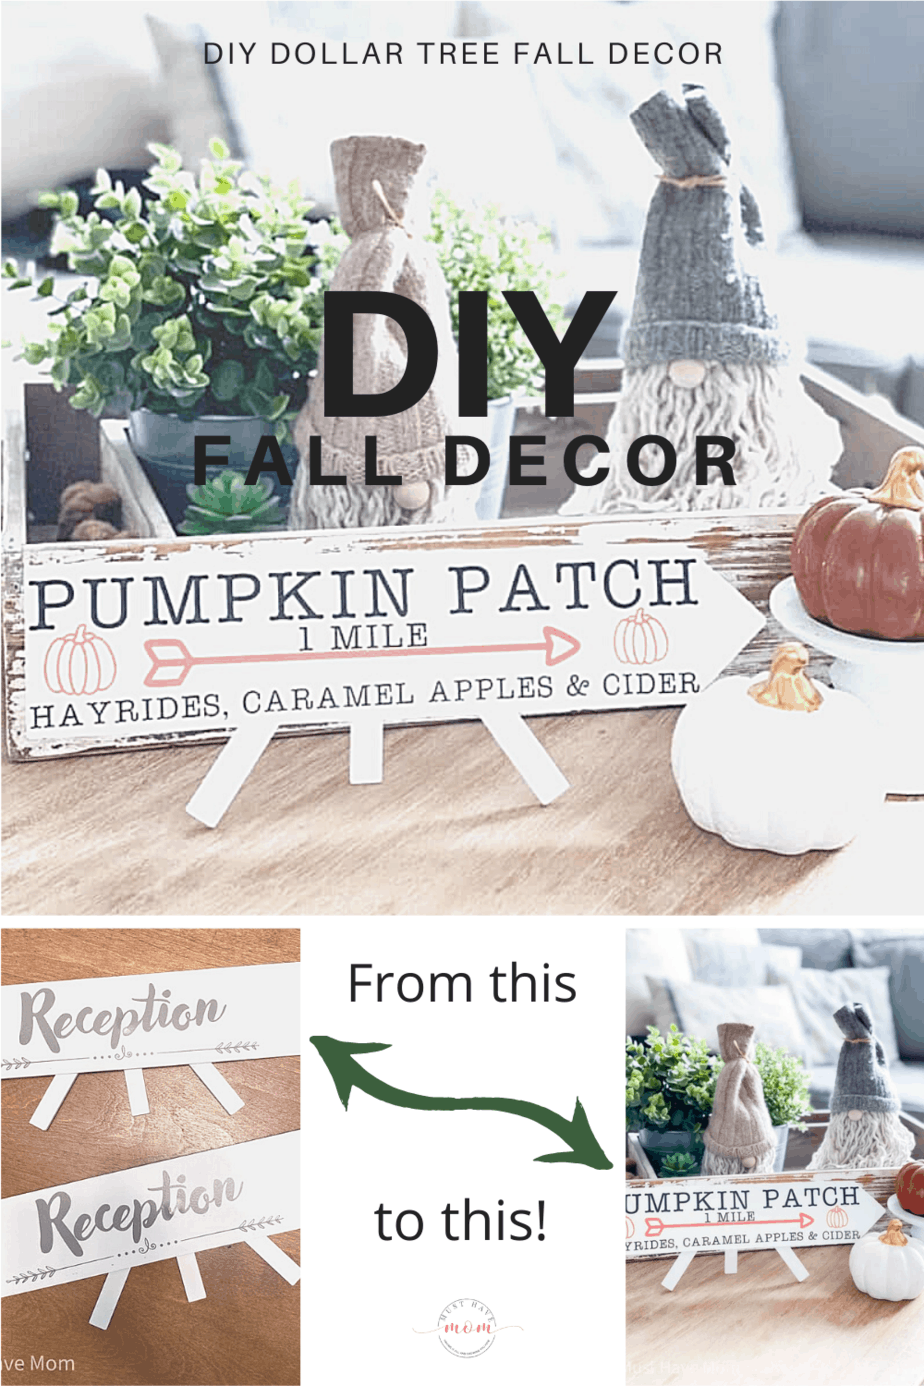 DIY Dollar Tree Fall Decor. DIY Pumpkin Patch sign. I love a challenge and turning Dollar Tree items into high-end decor items is always a fun time. (shhh no one will know it's from Dollar Tree)! #MustHaveMom #decor #DIY #crafts